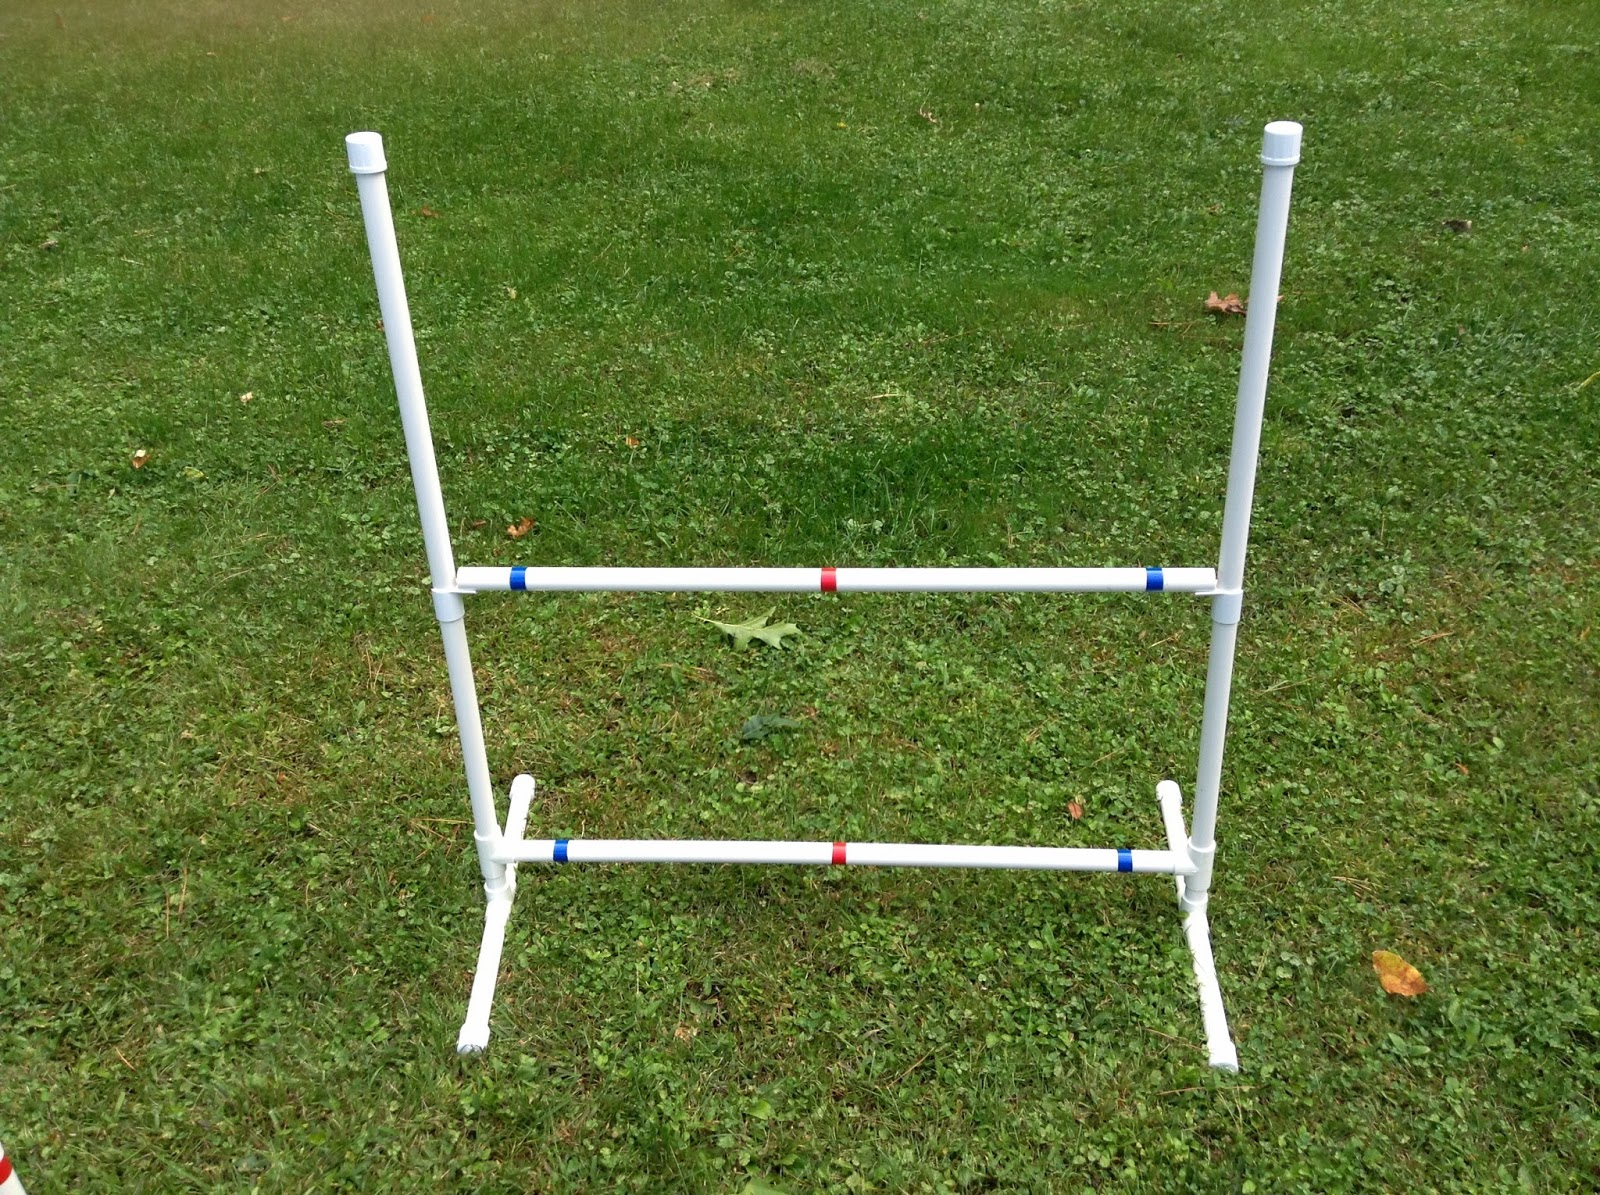 """Dog Agility Equipment-40 Jump Cups-3/4"""" FREE PLANS within ..."""